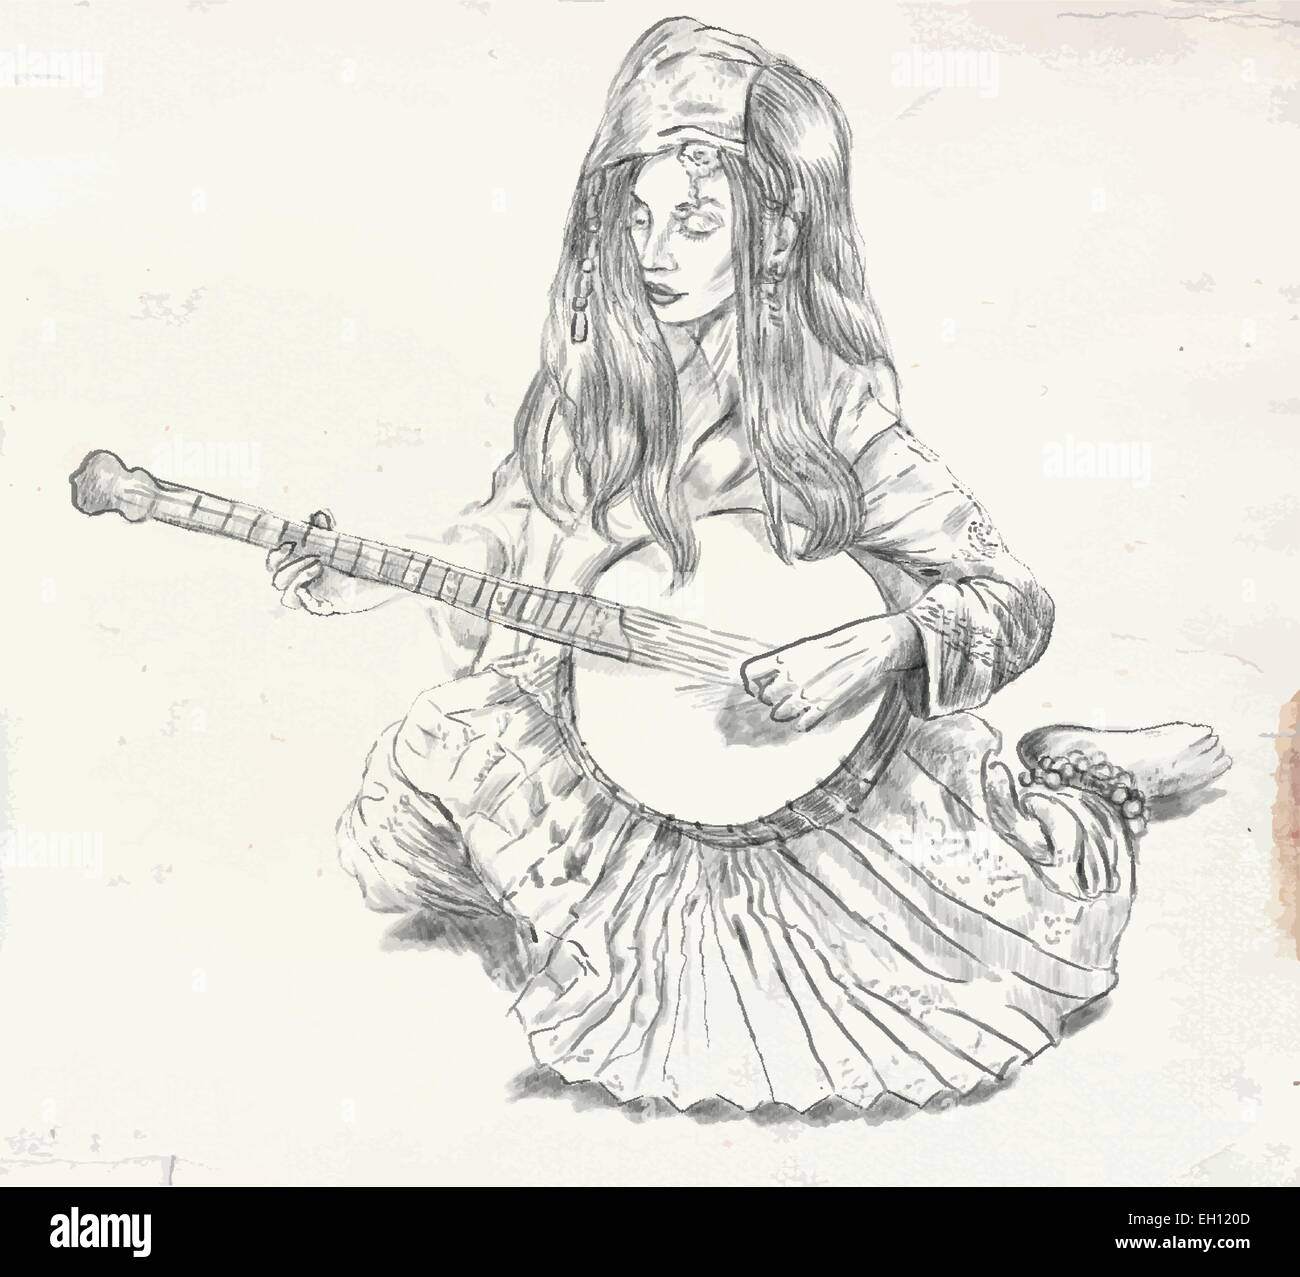 An hand drawn vector. Theme: Music and Musicians. BANJO PLAYER - An pretty woman tenderly plays the banjo. An hand - Stock Image